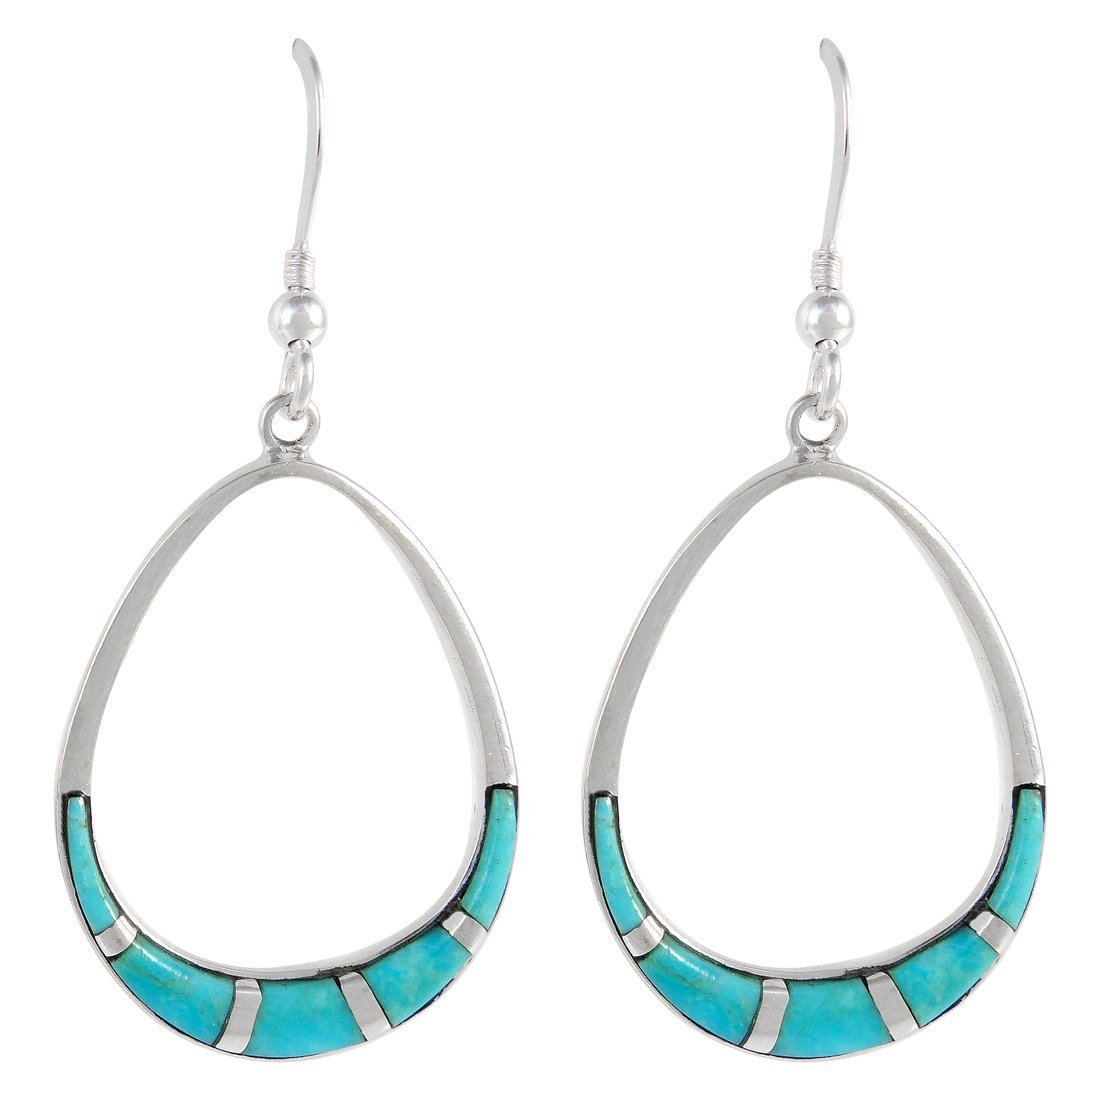 925 Sterling Silver Earrings Genuine Turquoise Pear-Shape Drop Dangles by Turquoise Network (Image #1)